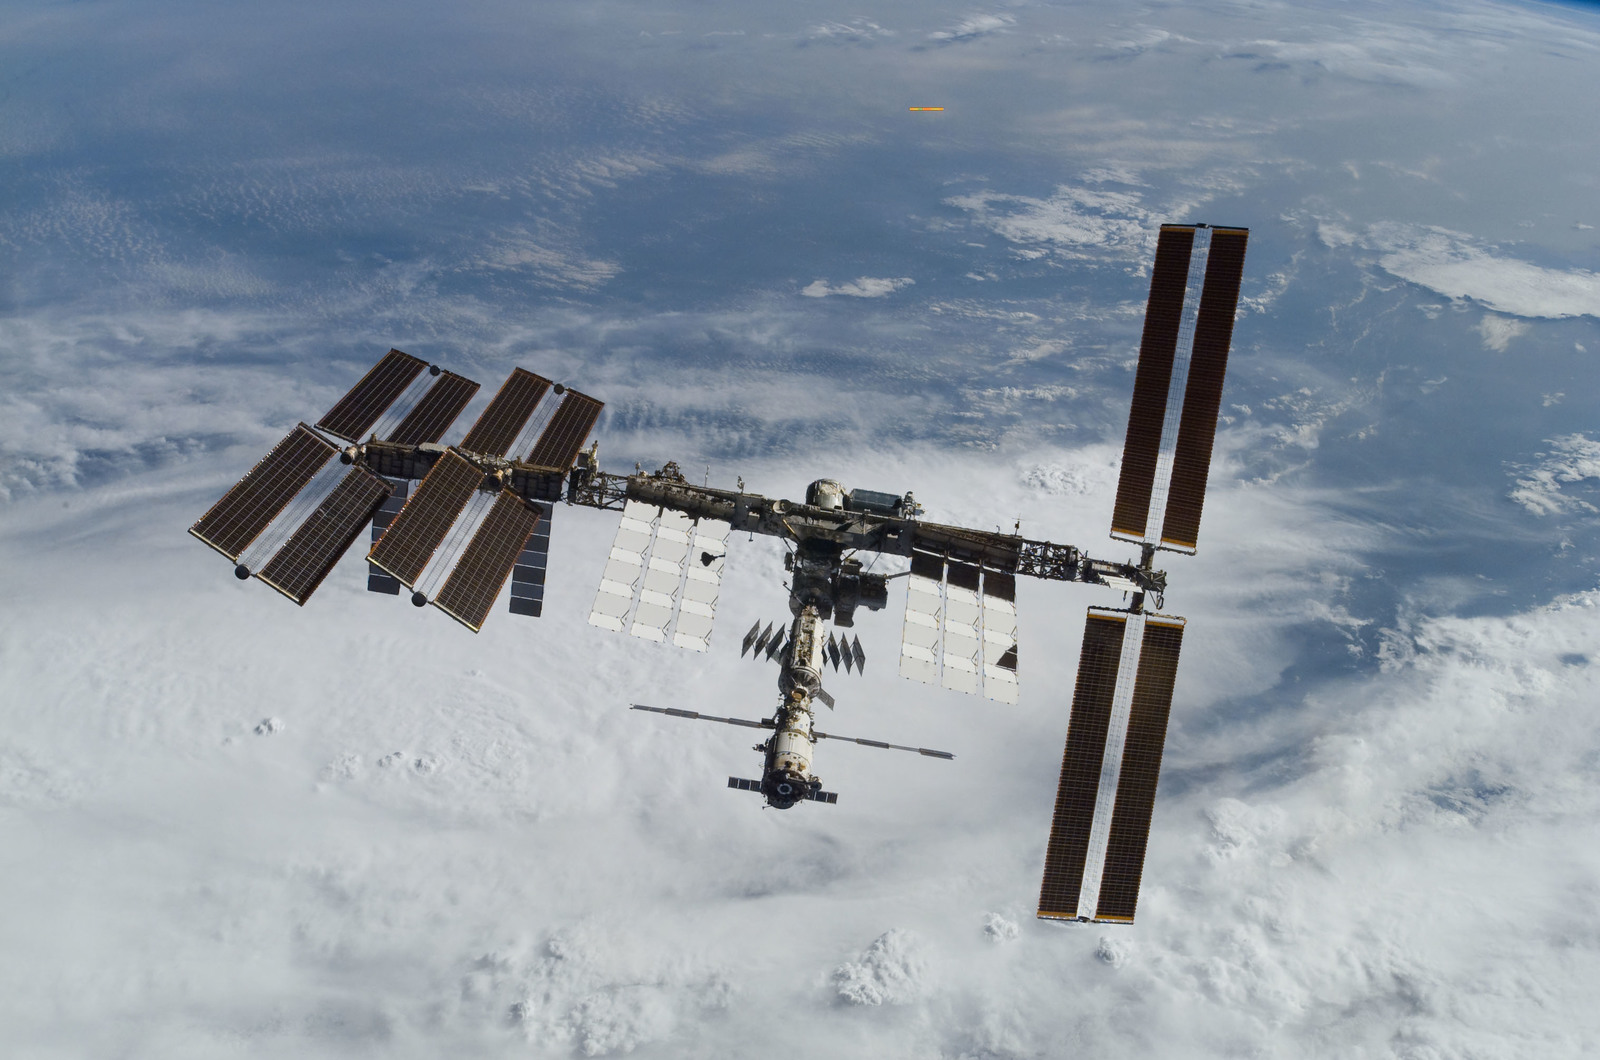 S122E010936 - STS-122 - View of ISS after STS-122 Undocking